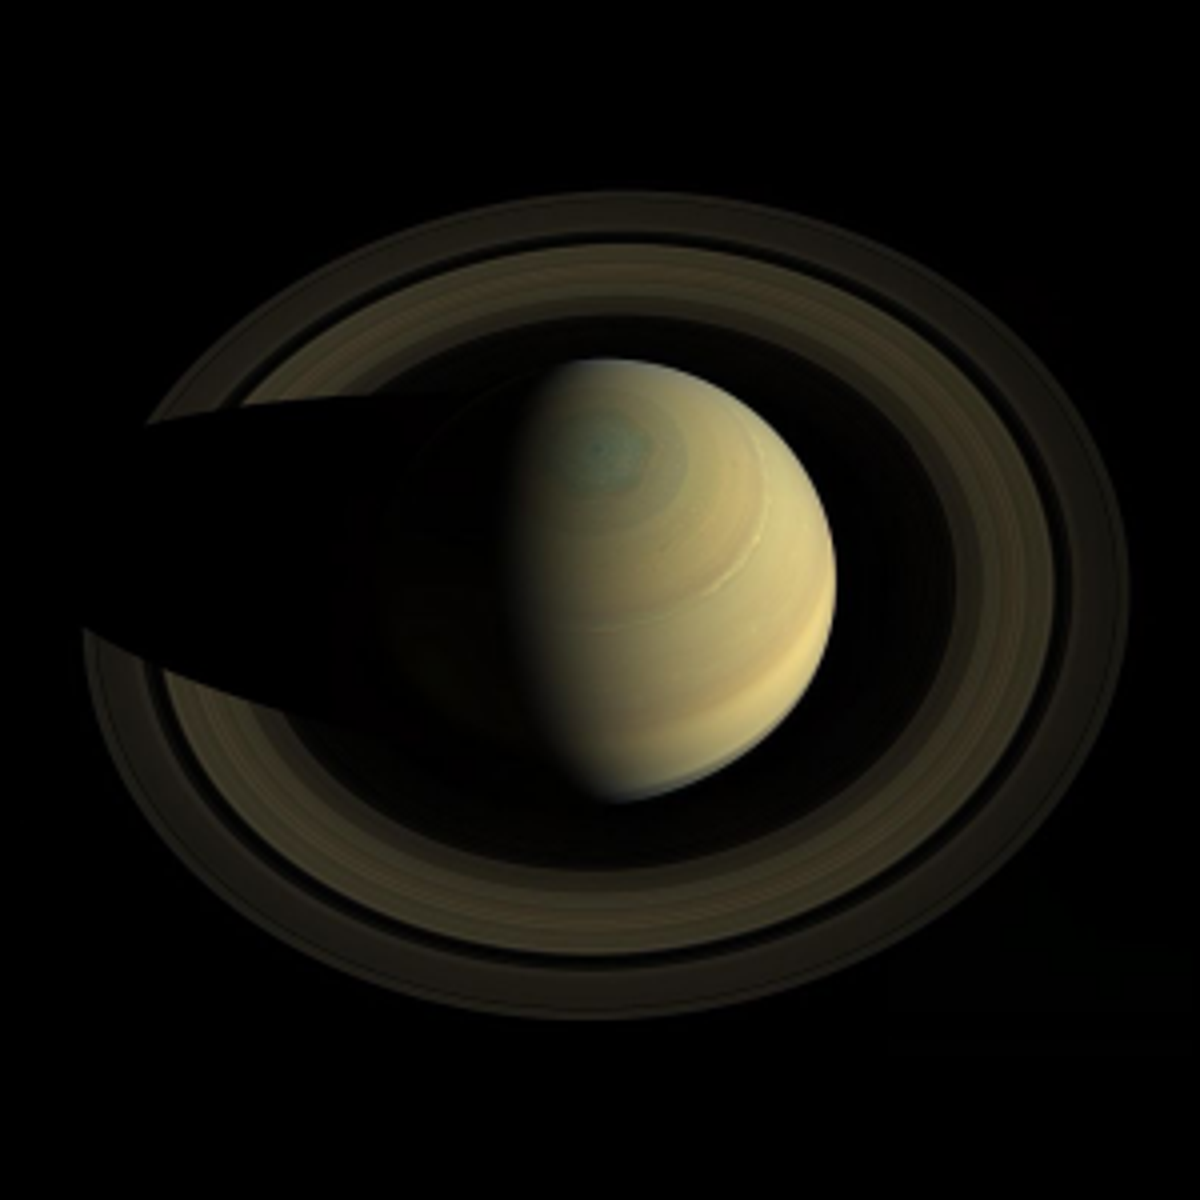 A photo of Saturn taken from above by NASA's Cassini spacecraft.